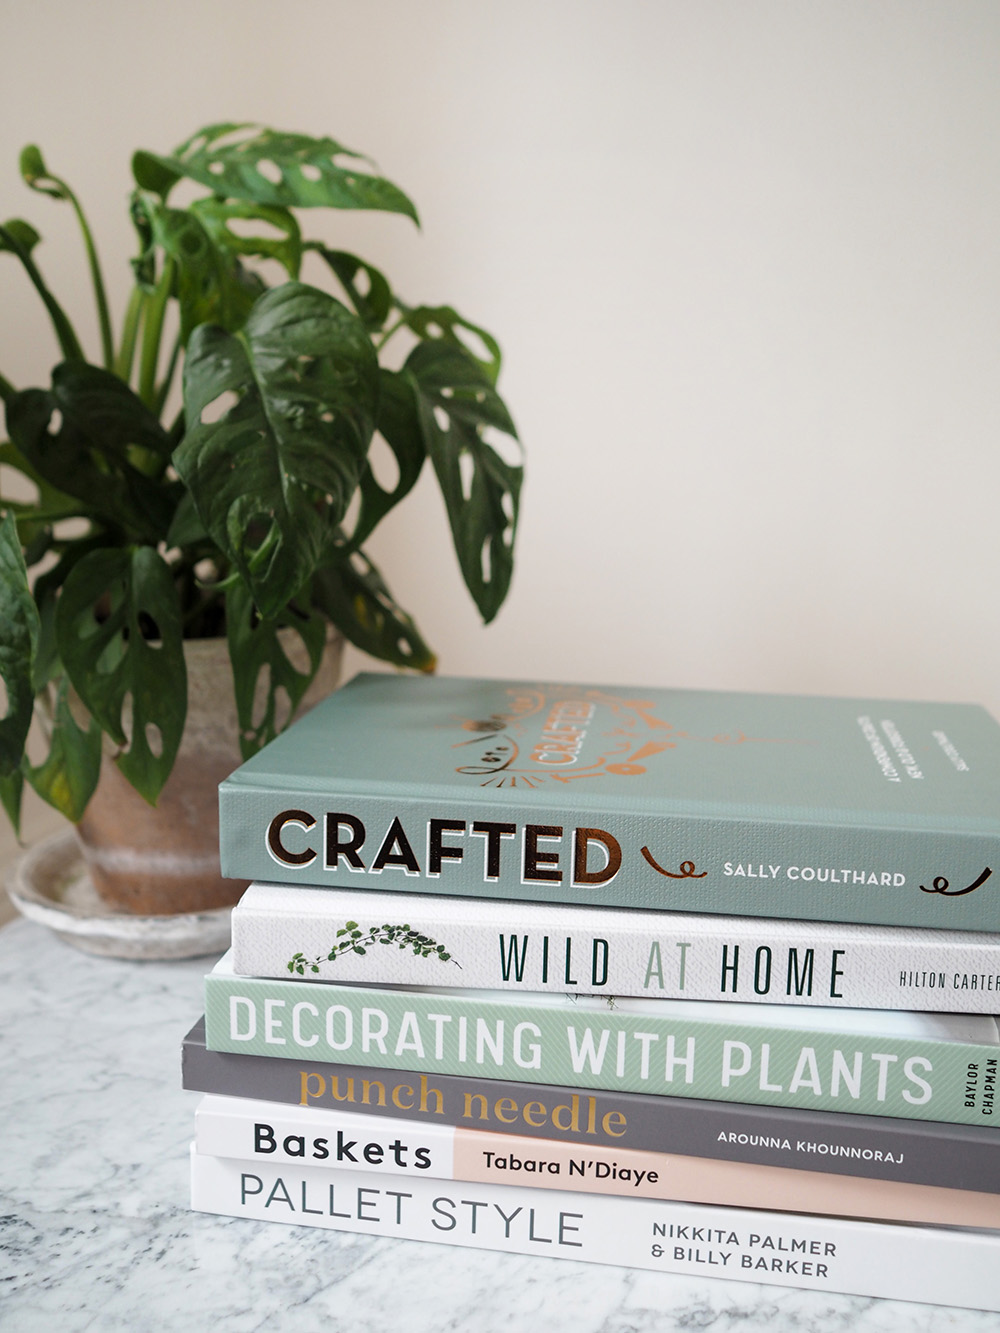 91 Magazine's top 6 craft, interiors and lifestyle books for summer 2019